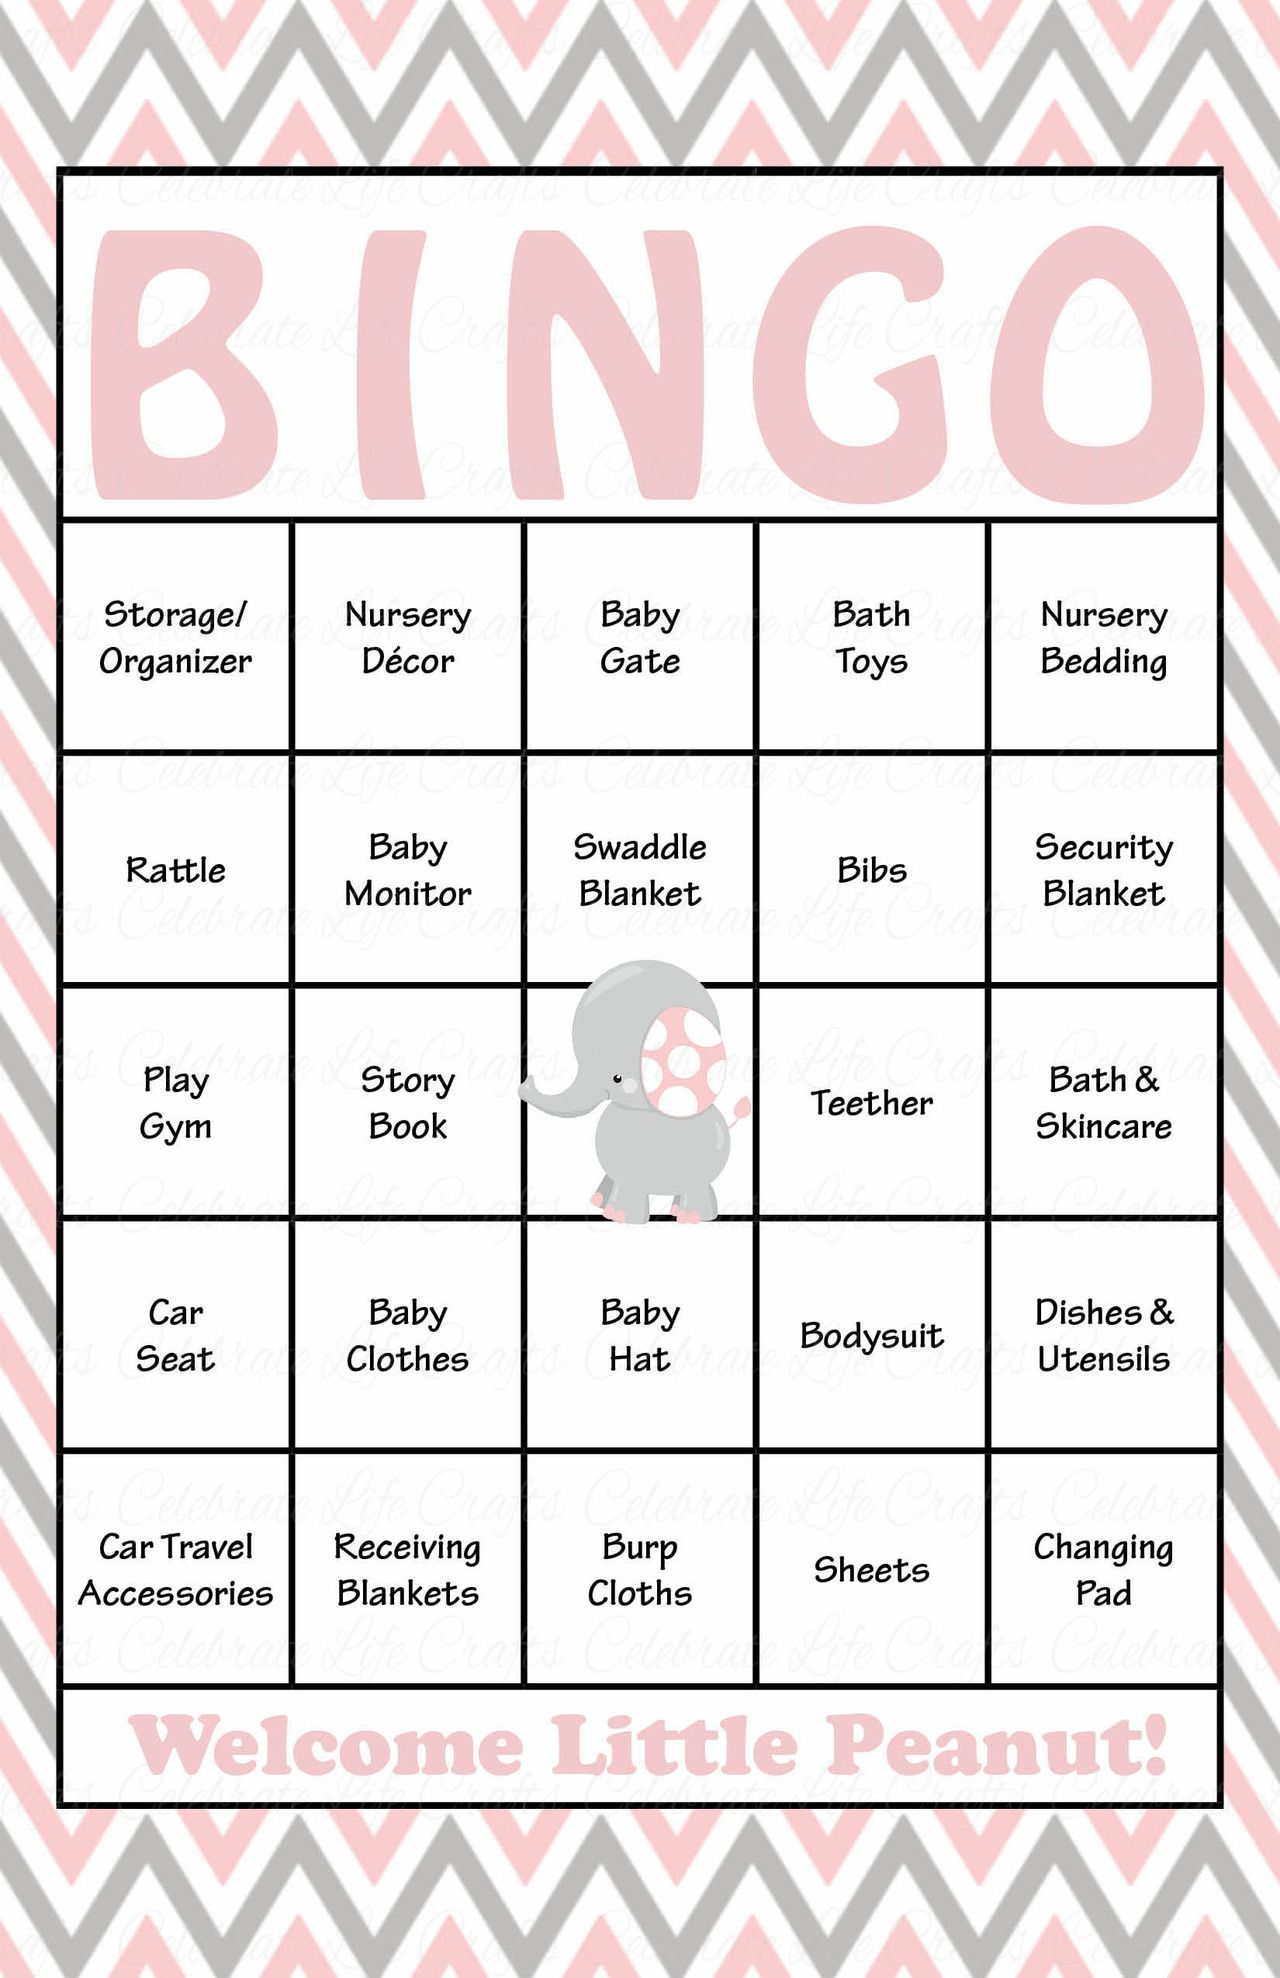 Elephant Baby Shower Baby Bingo Cards Printable Download Baby Shower Game For Girl Pink Gray B3001 Baby Shower Bingo Elephant Baby Shower Theme Baby Boy Shower